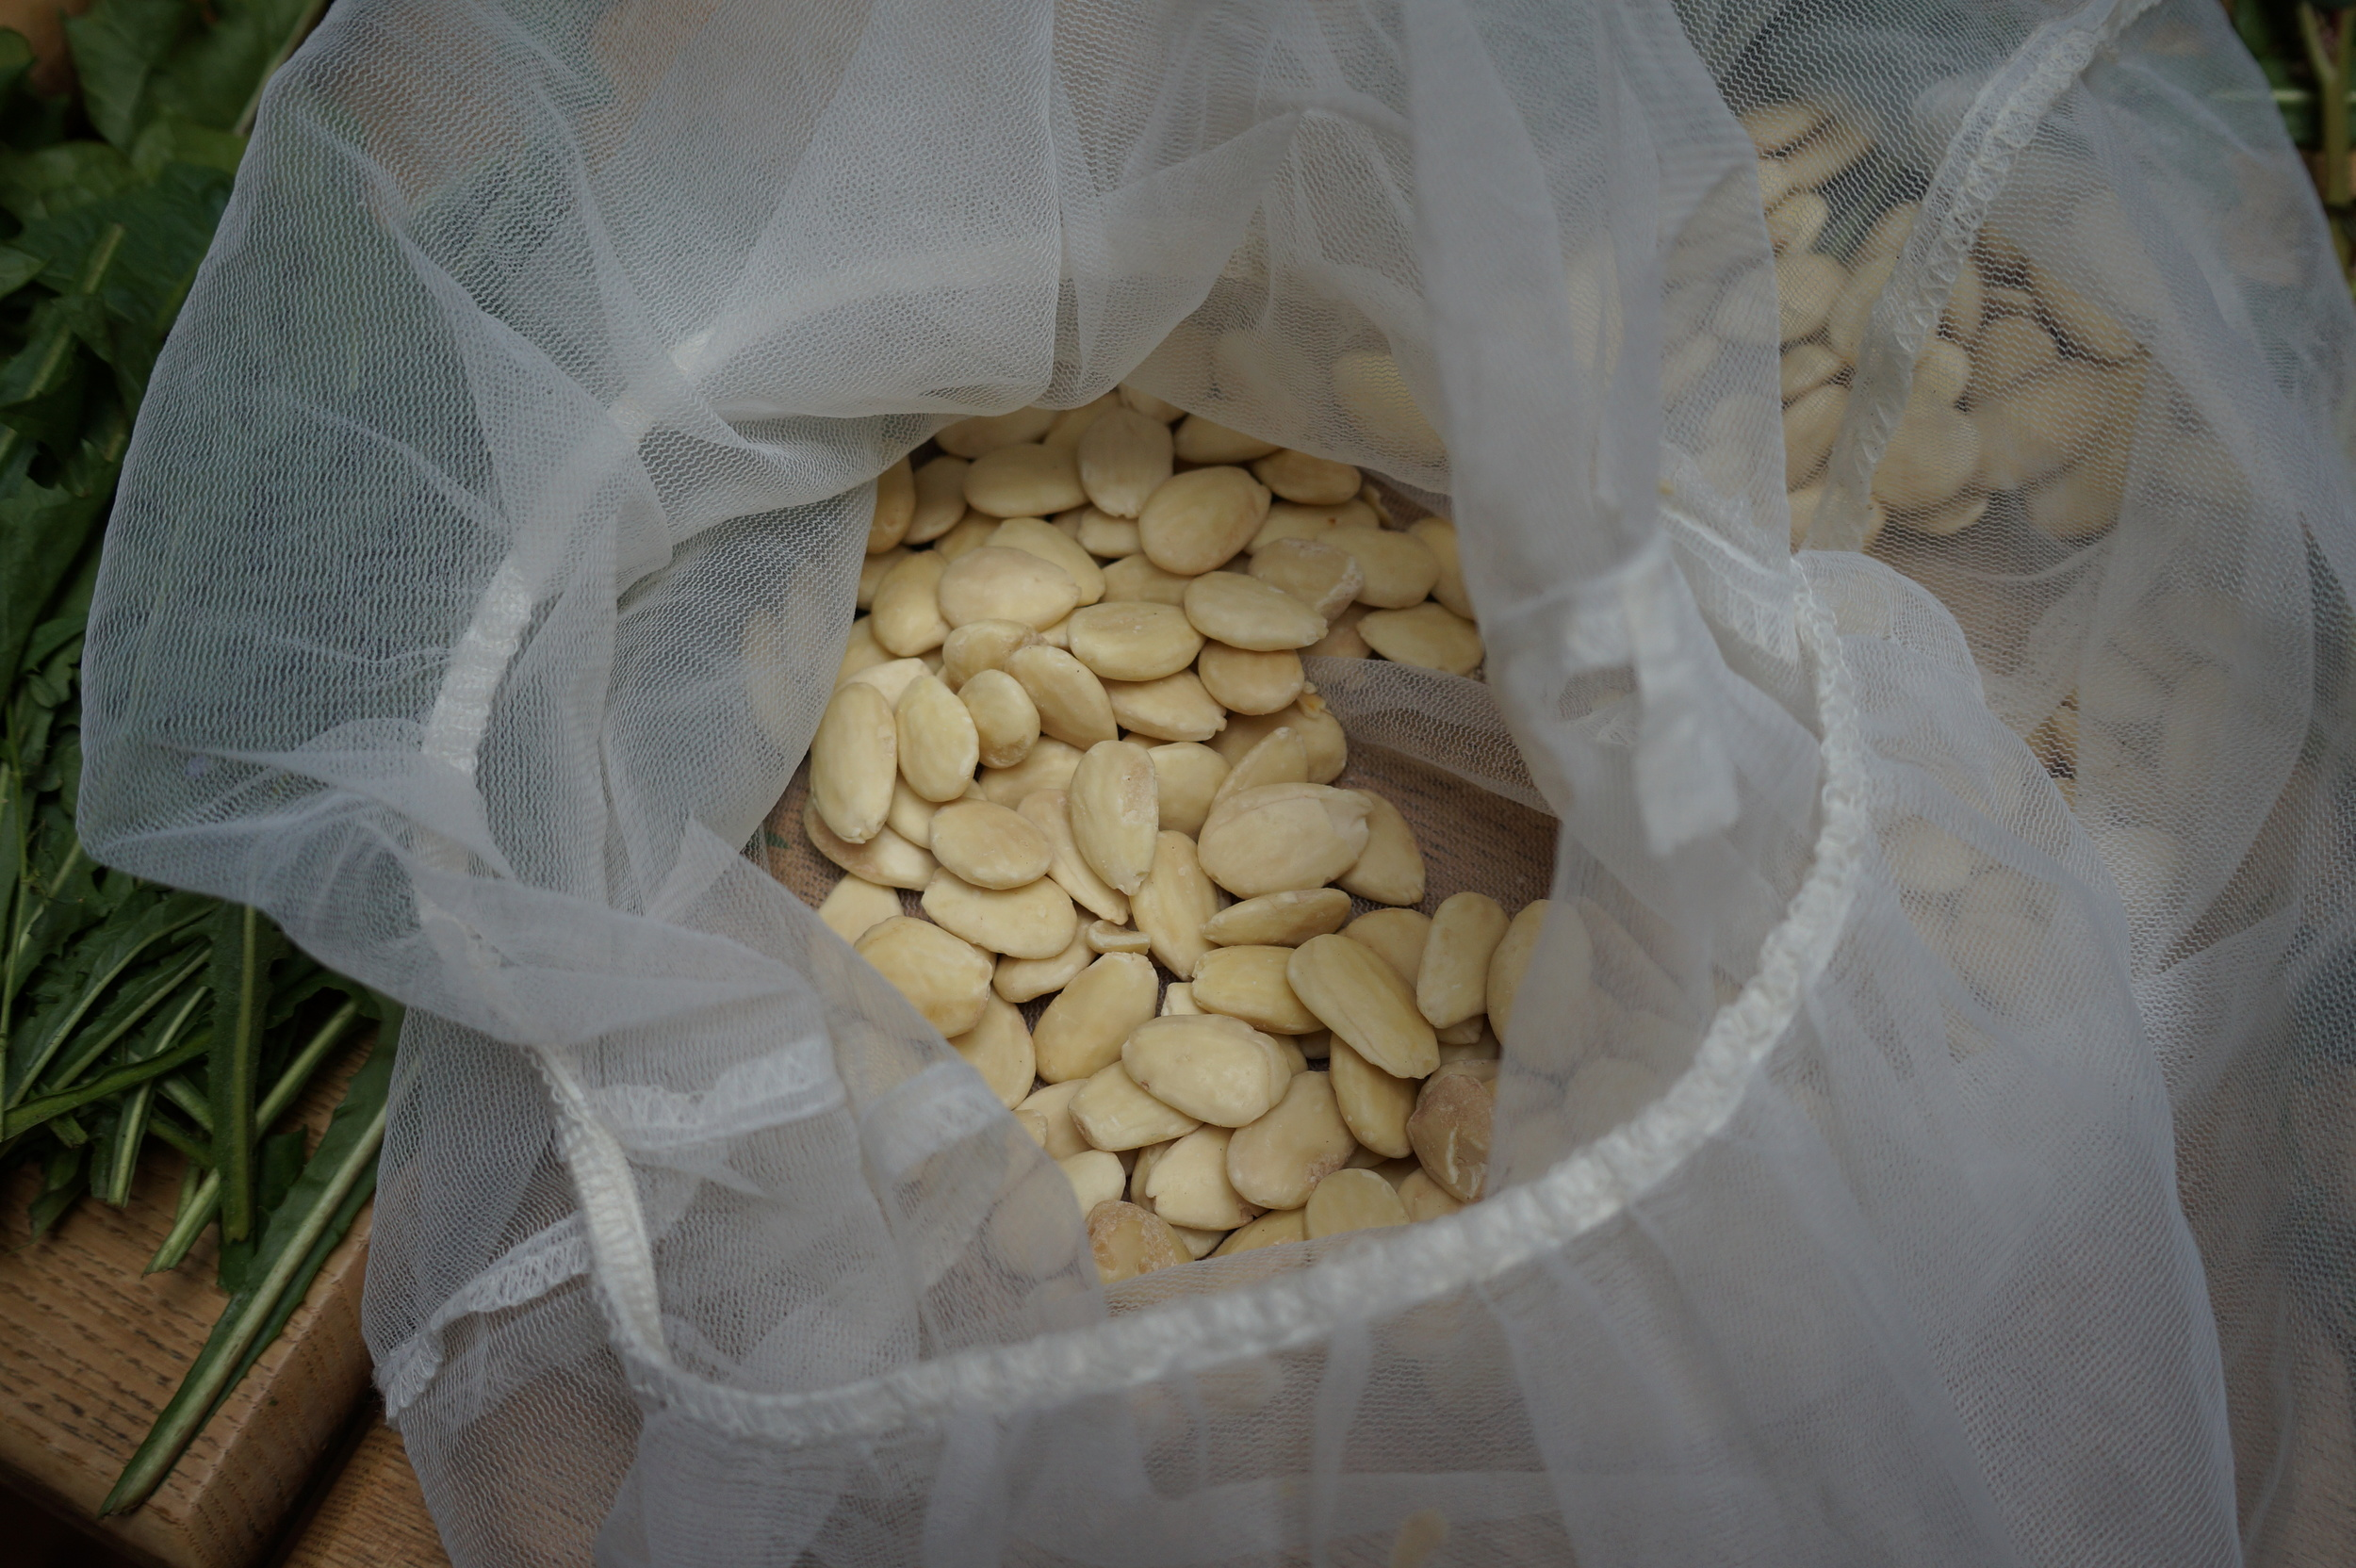 Those were the BEST almonds ever, from Spain..